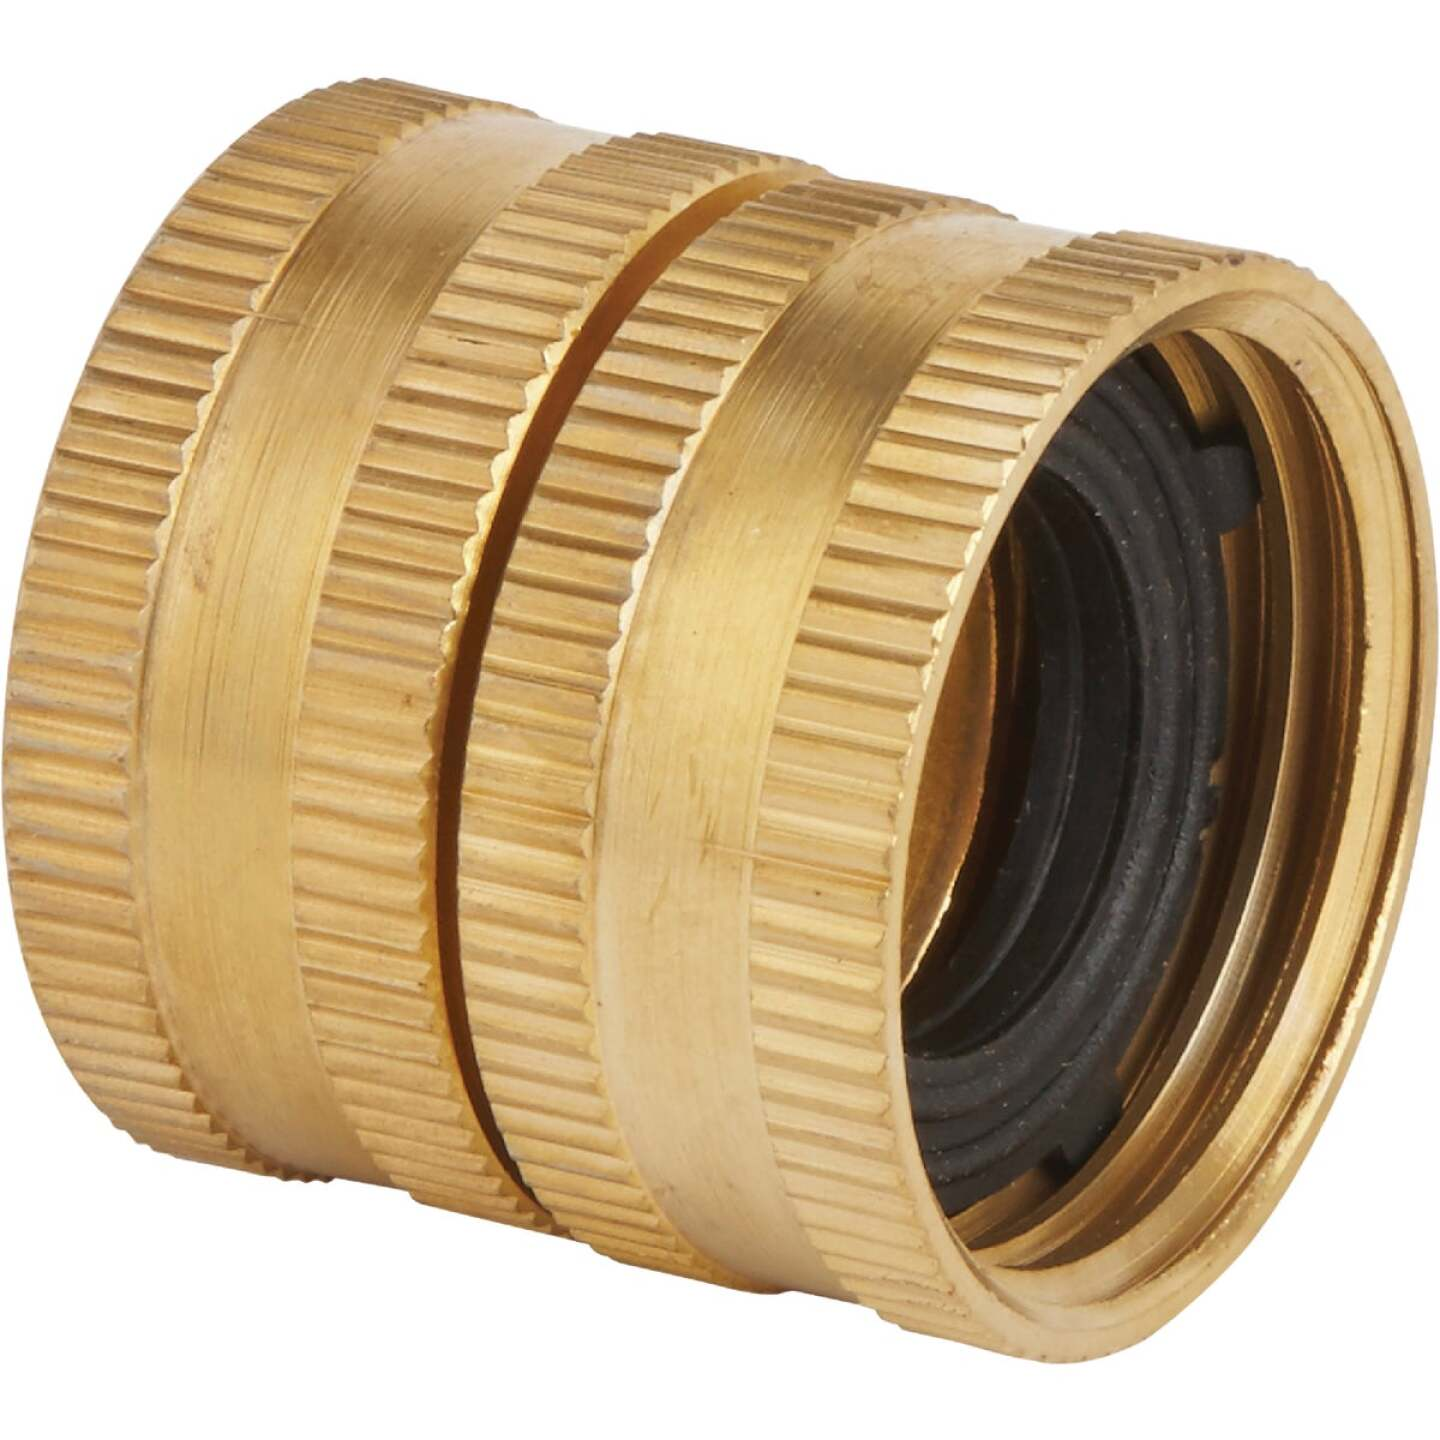 Best Garden 3/4 In. FNH x 3/4 In FNH Brass Swivel Hose Connector Image 1